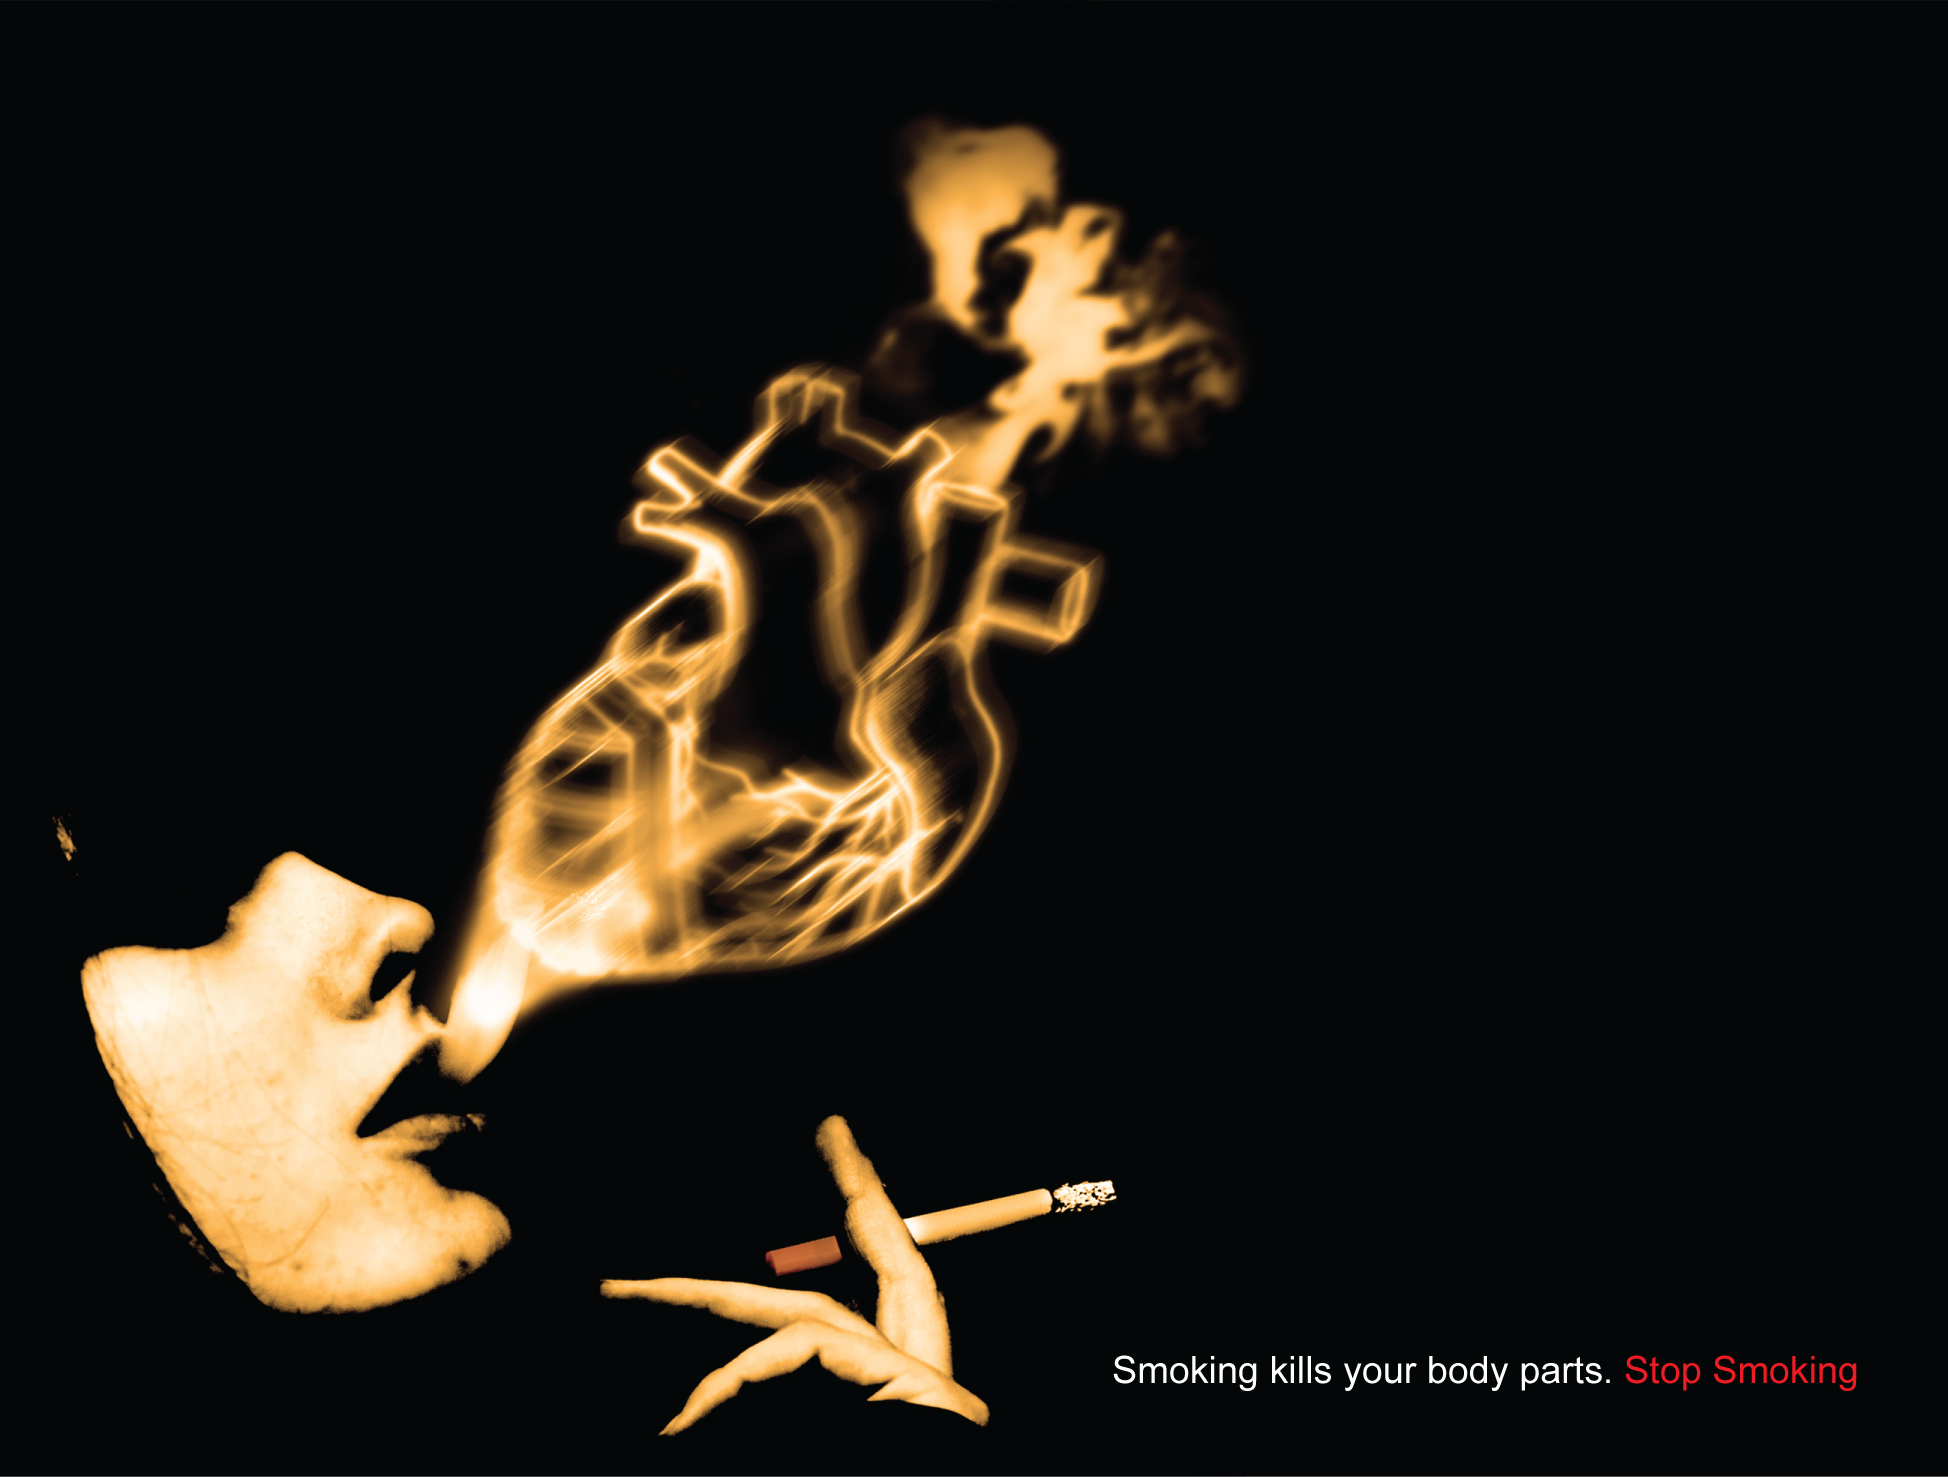 STOP_Quit Smoking | DesiCreative